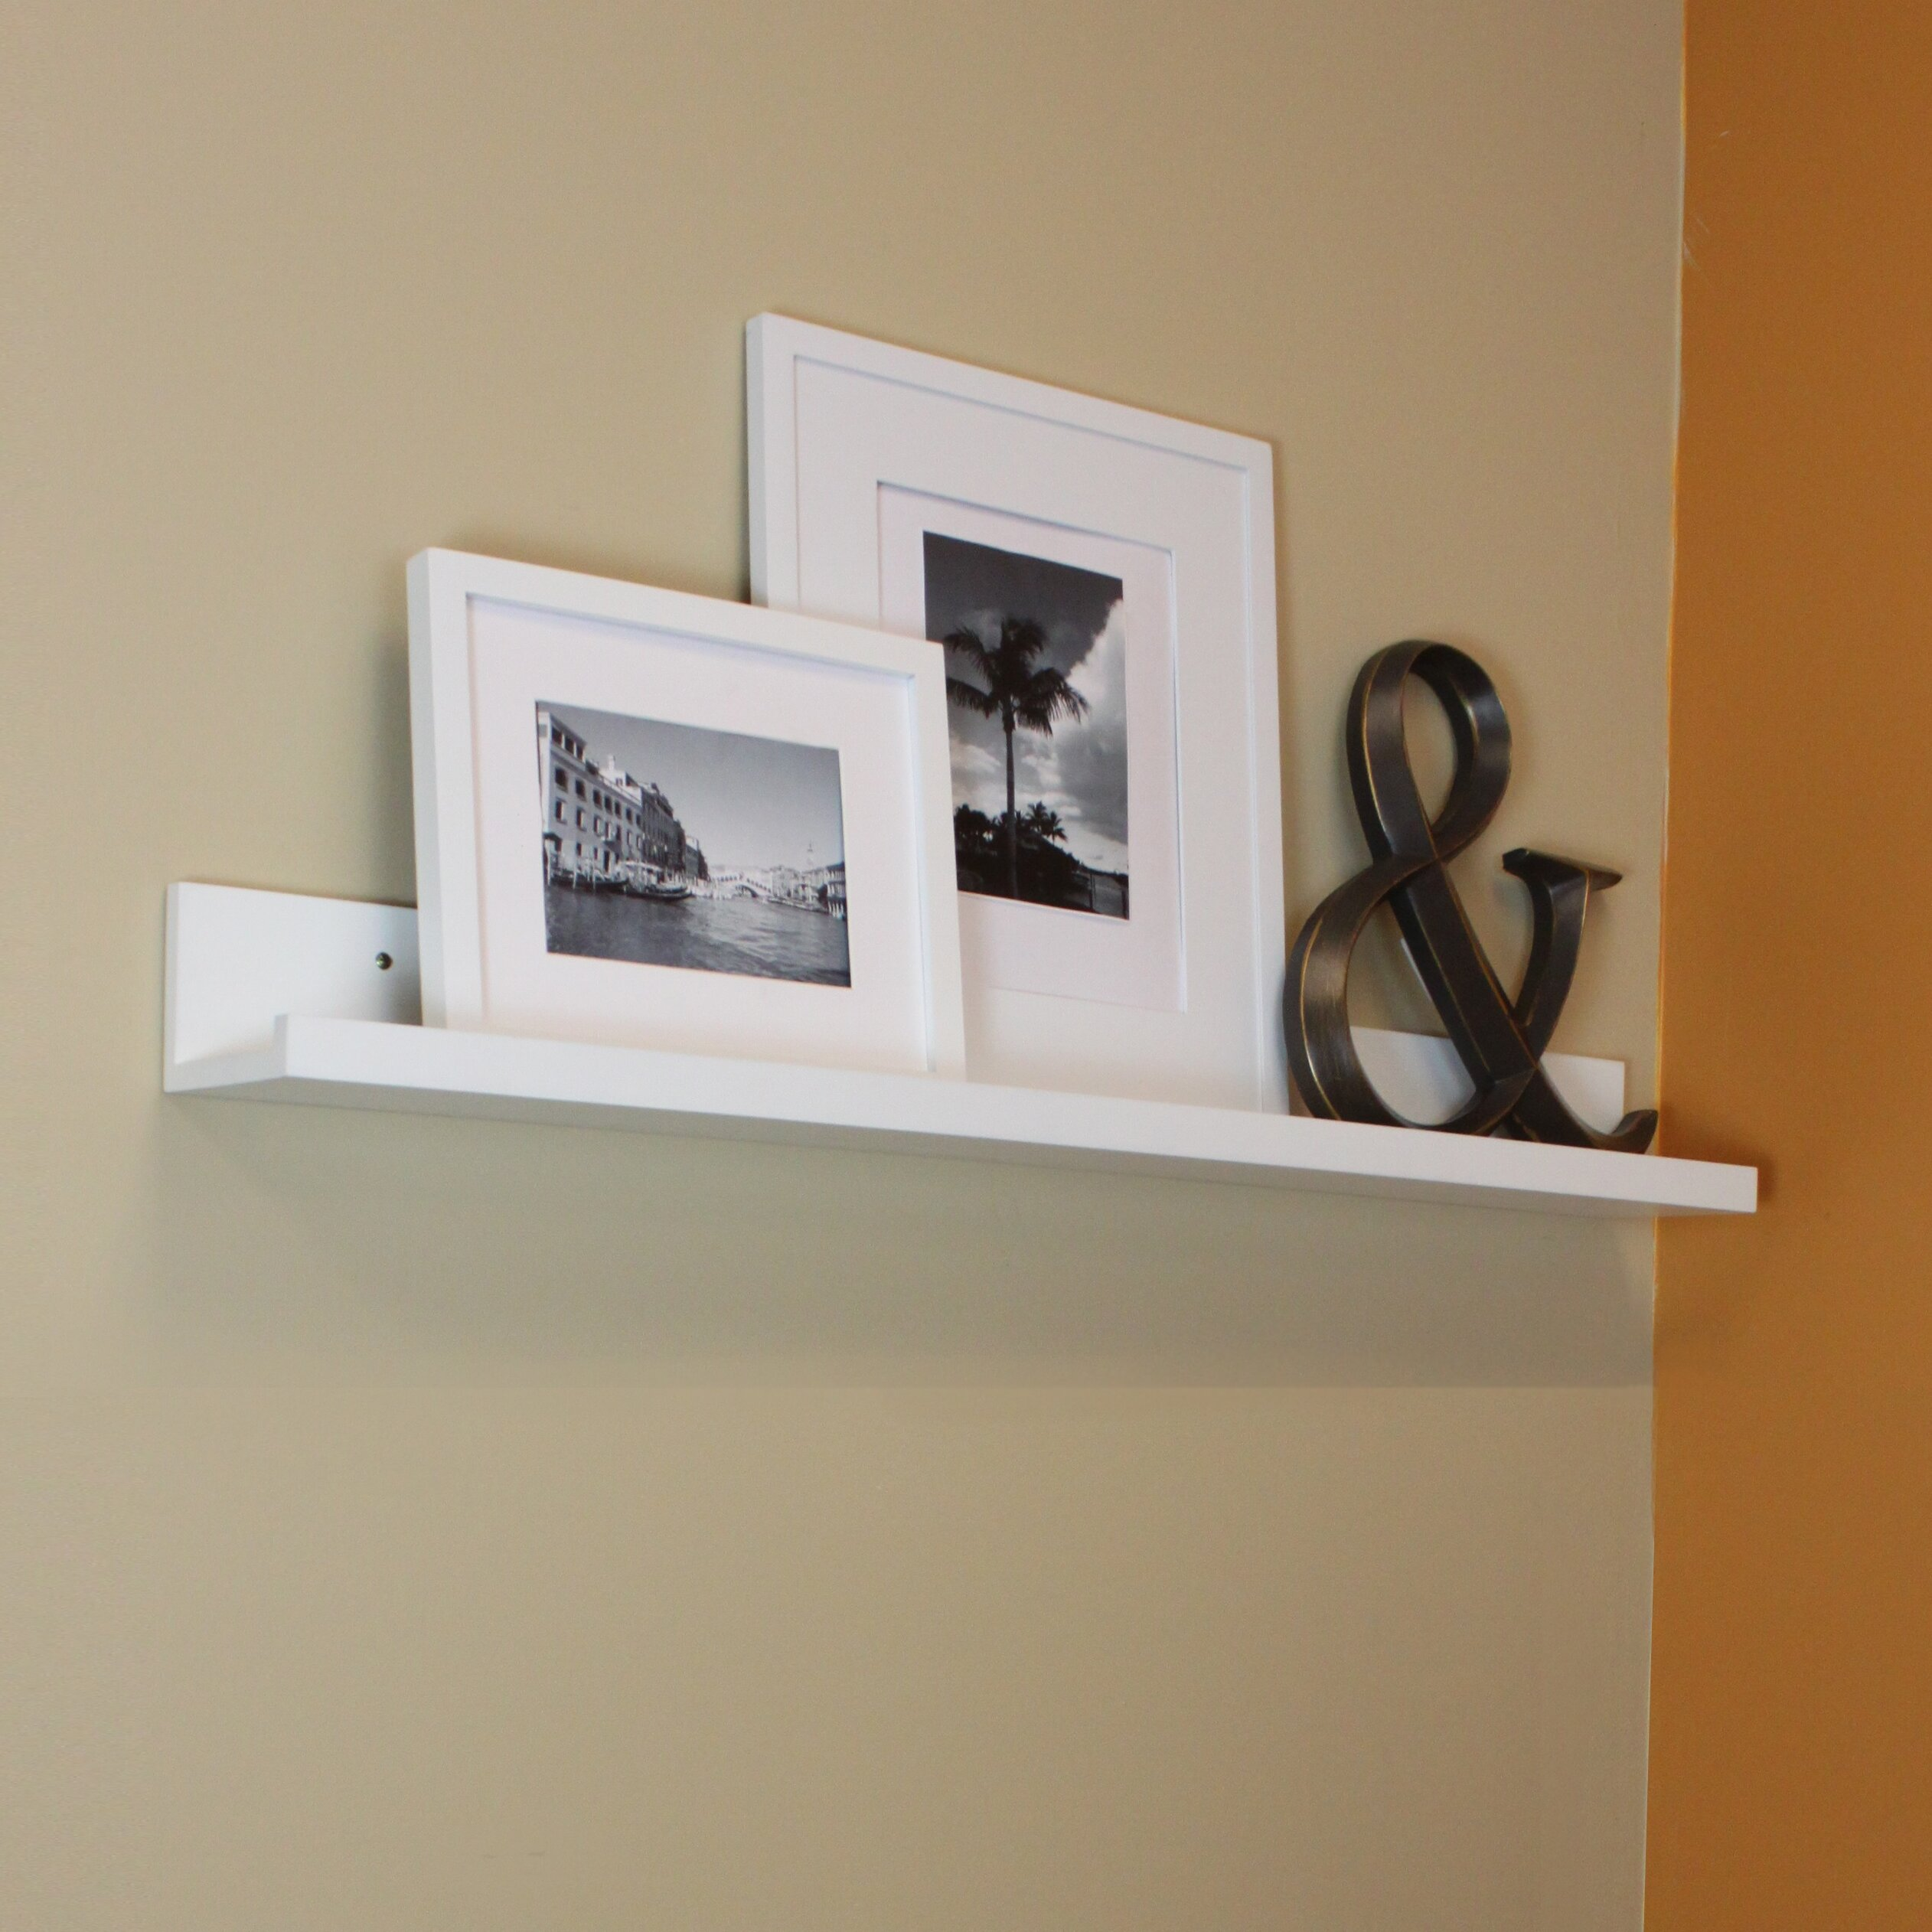 Inplace Shelving Picture Ledge Floating Wall Shelf